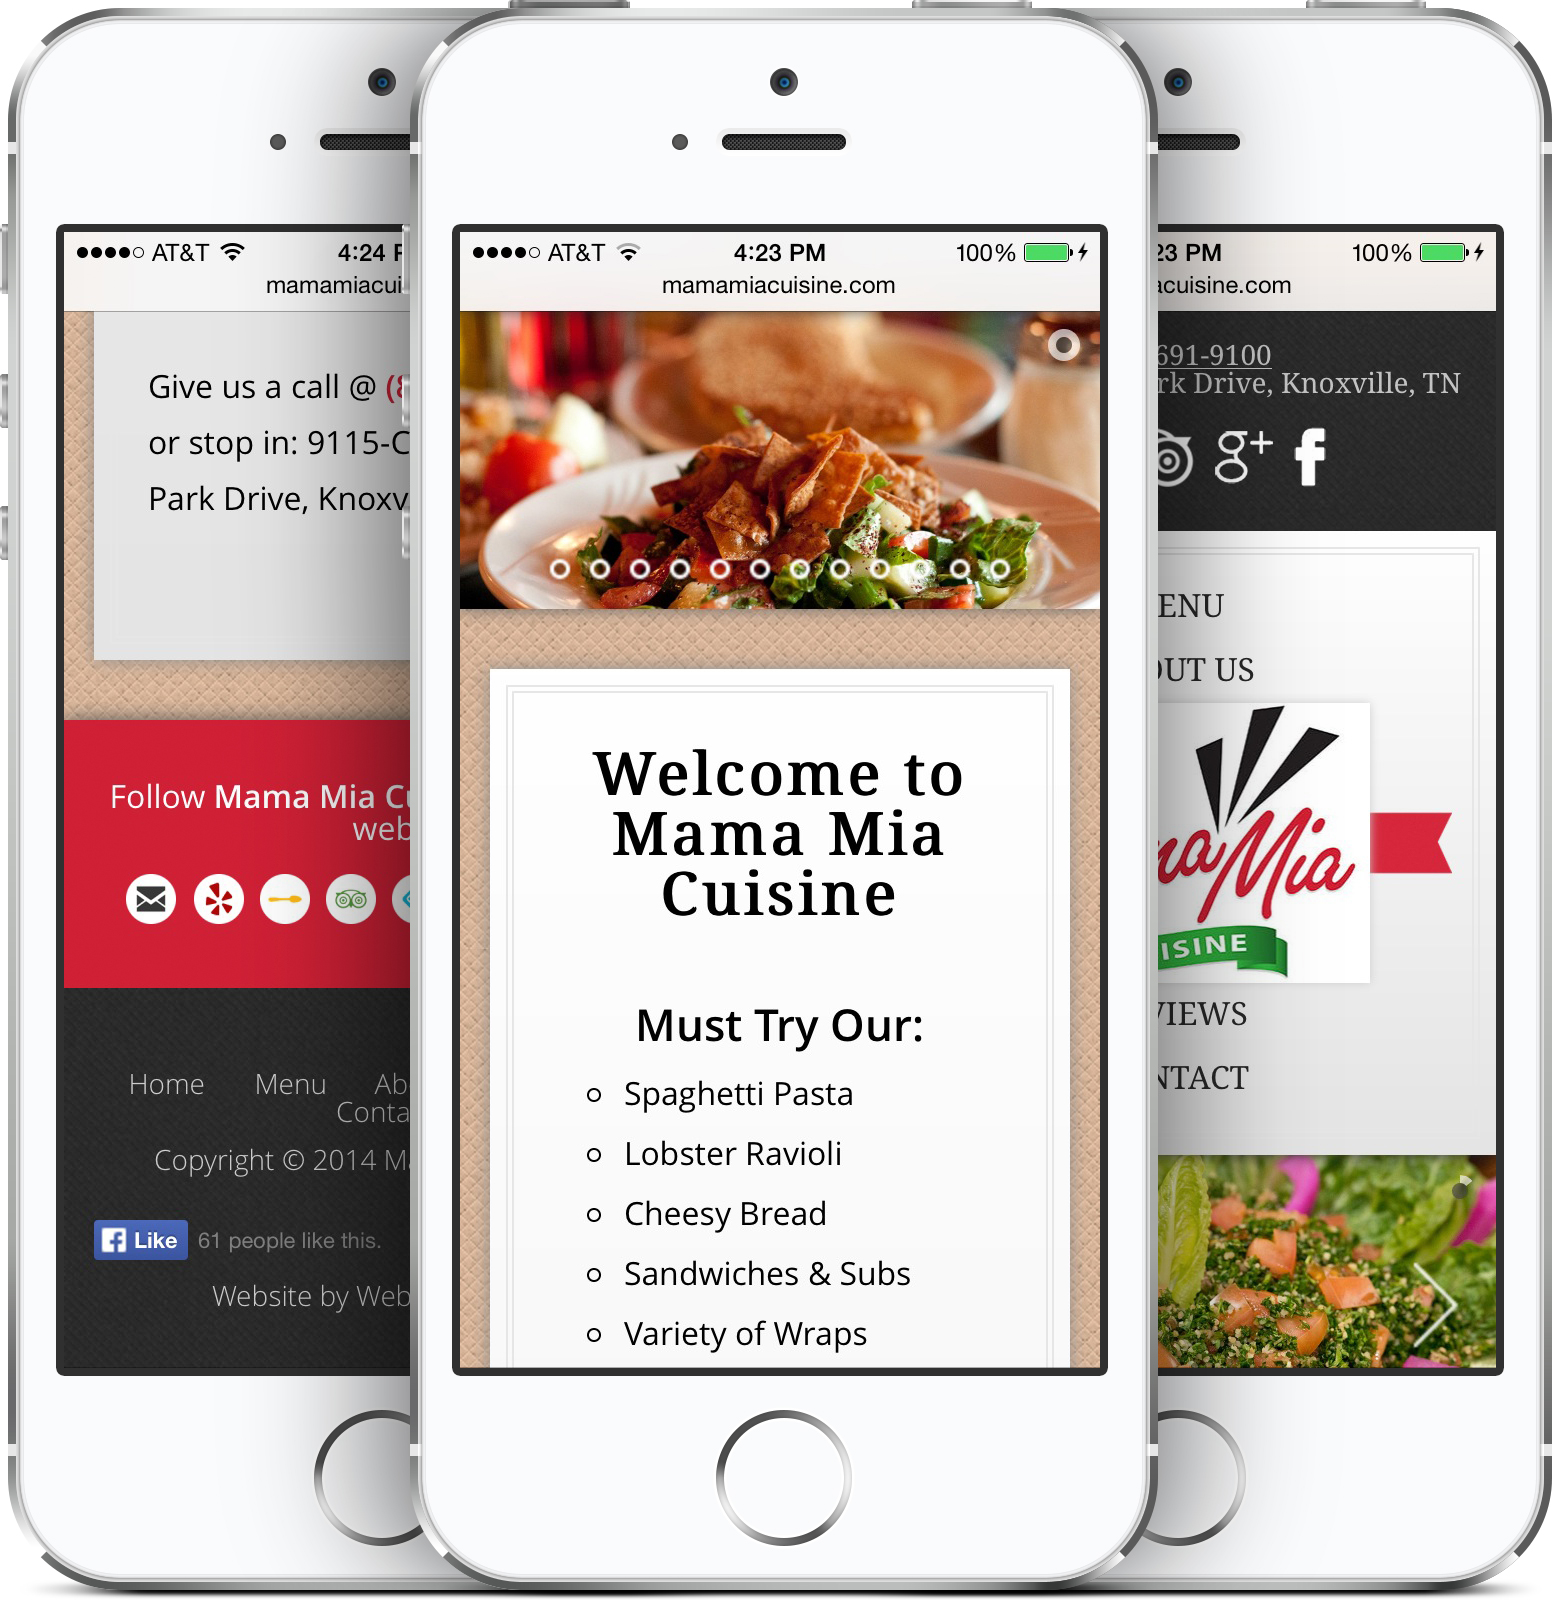 Mama Mia Cuisine Responsive Design on an iPhone